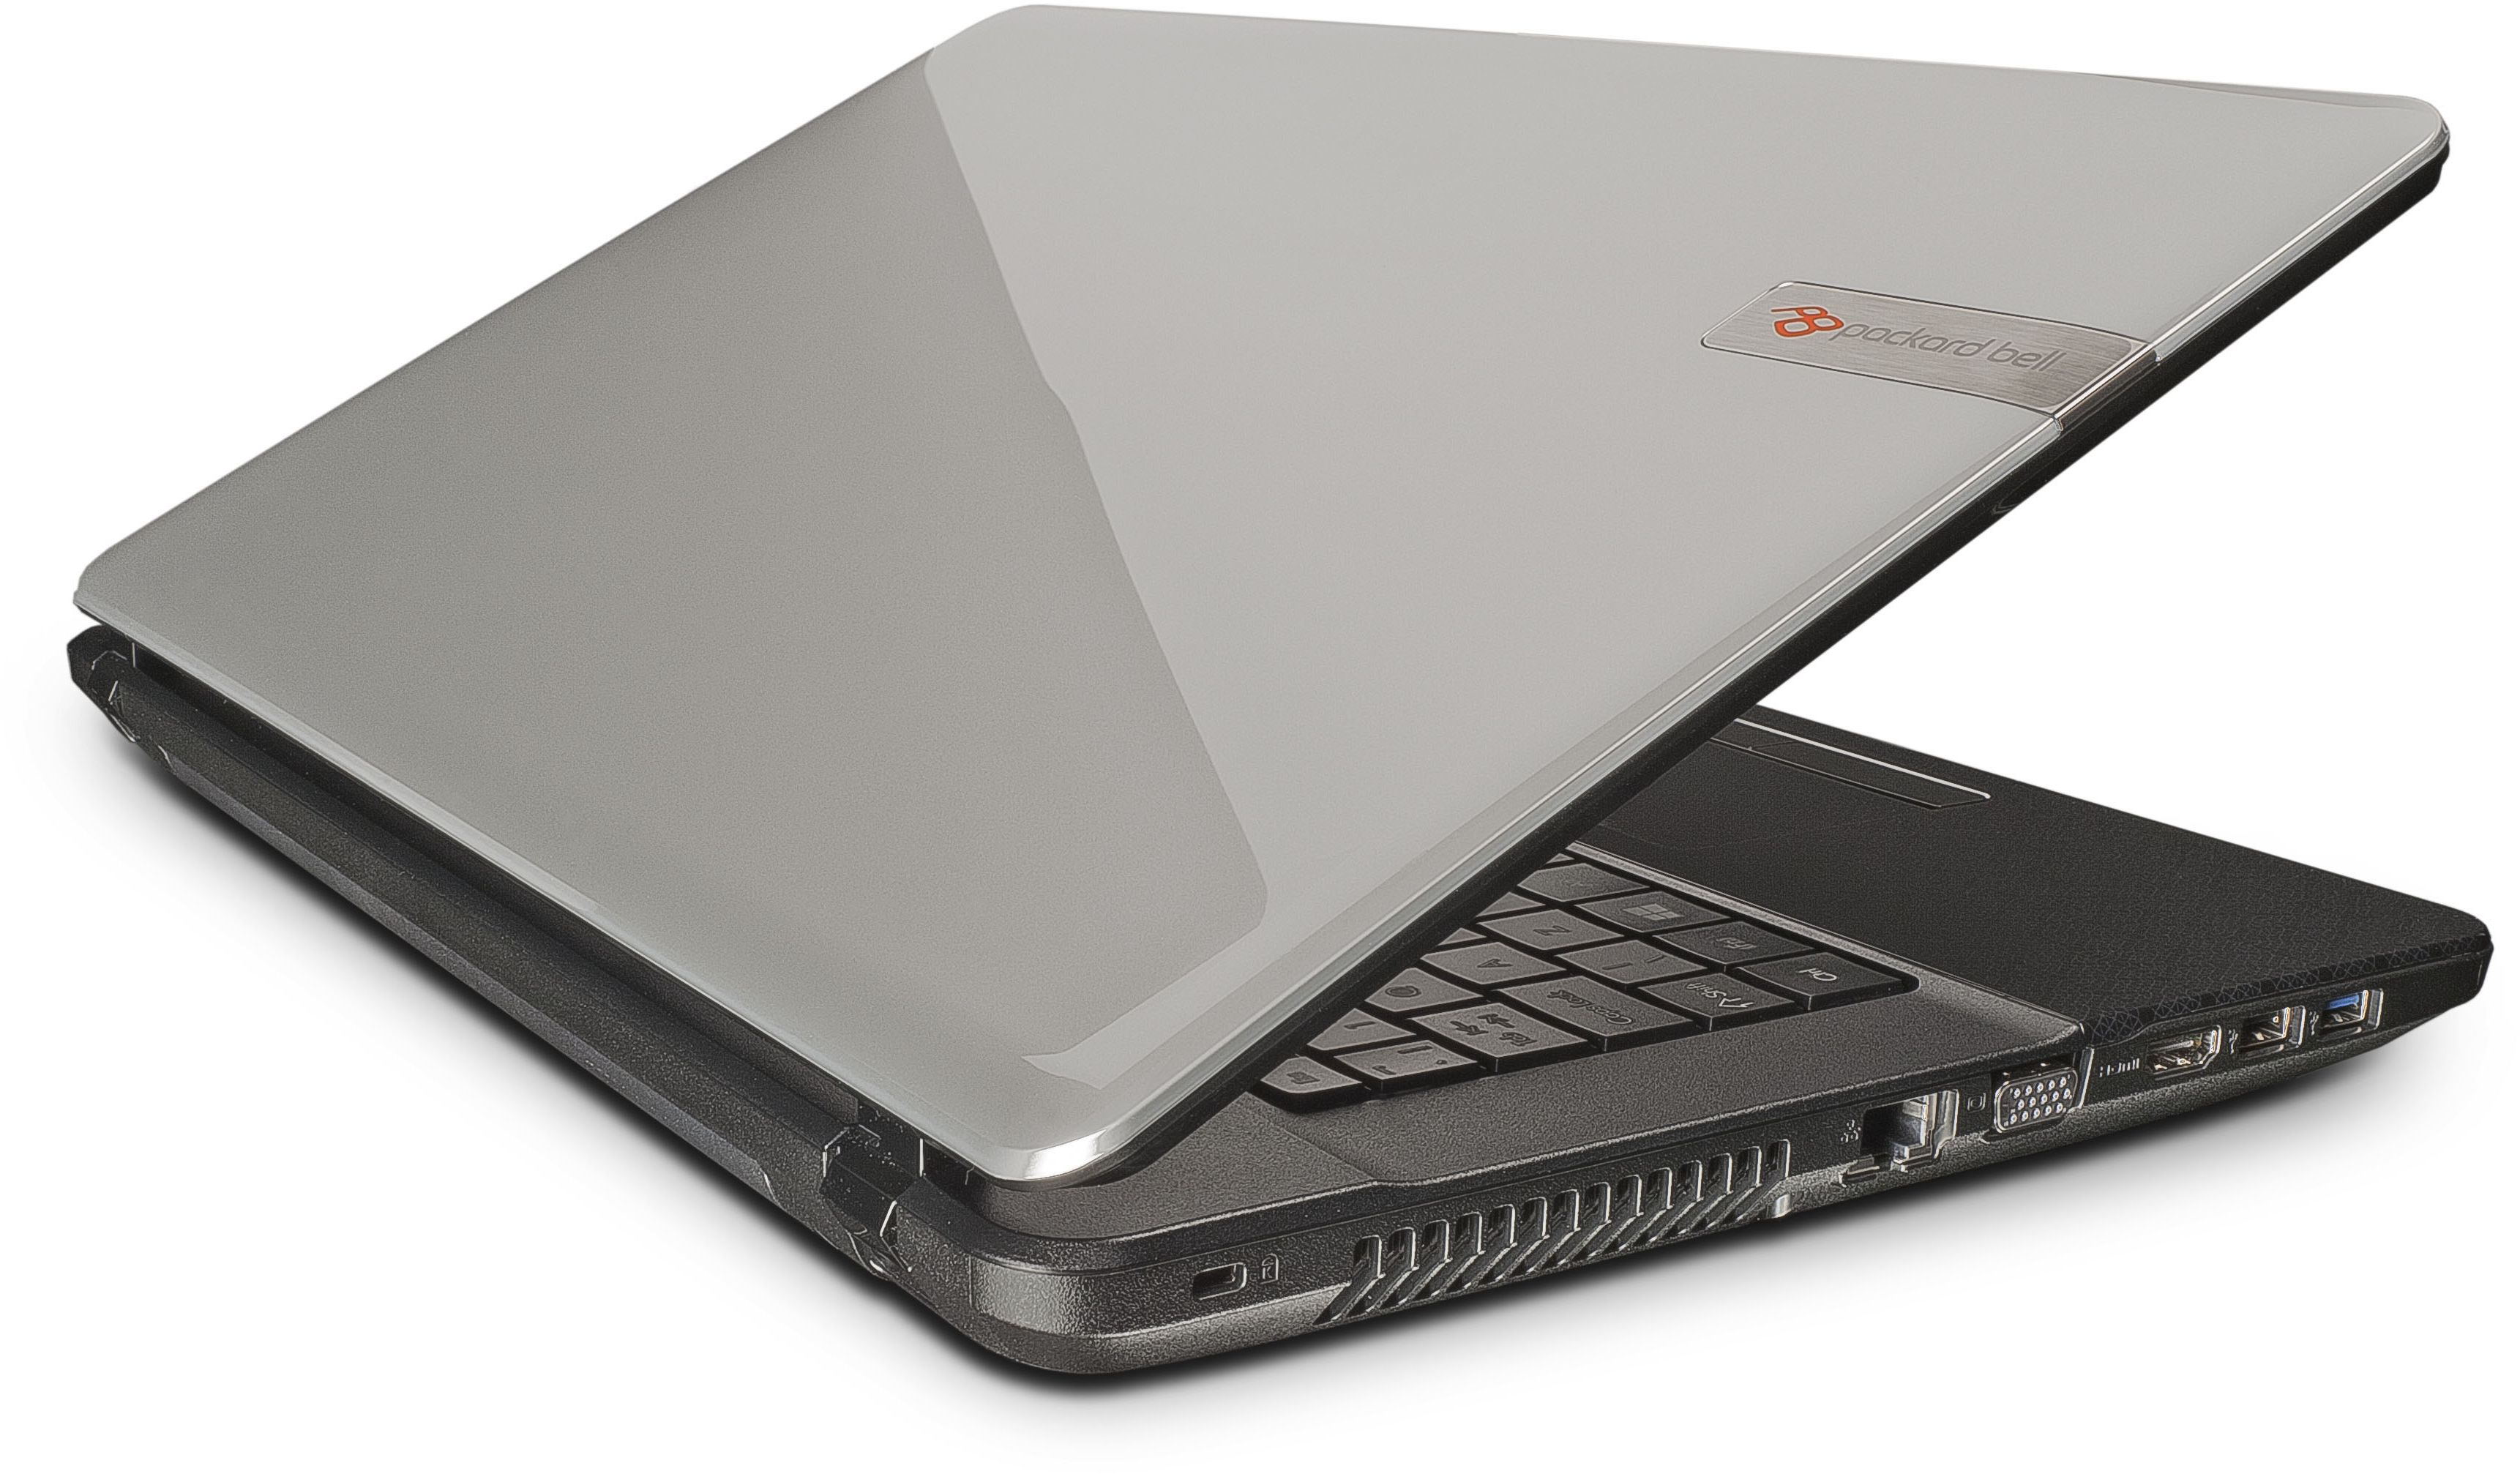 New Driver: Packard Bell EasyNote LE69KB